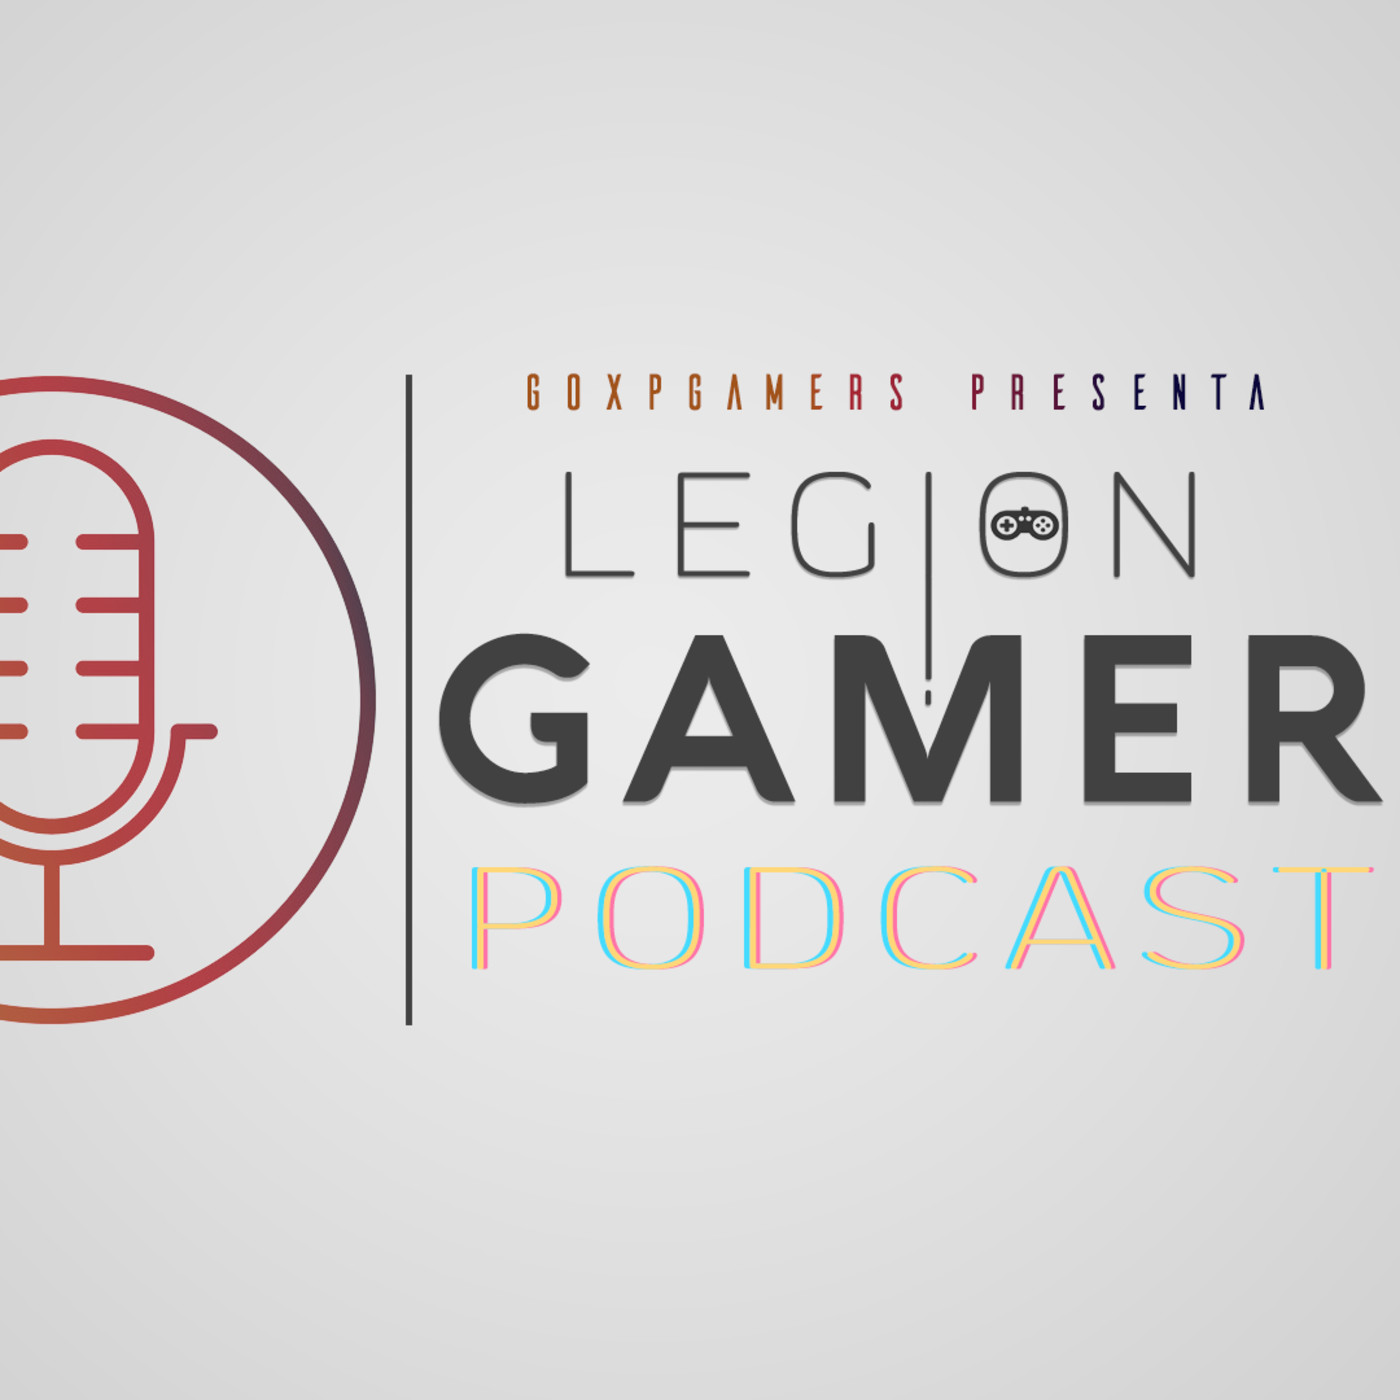 Legión Gamer Podcast